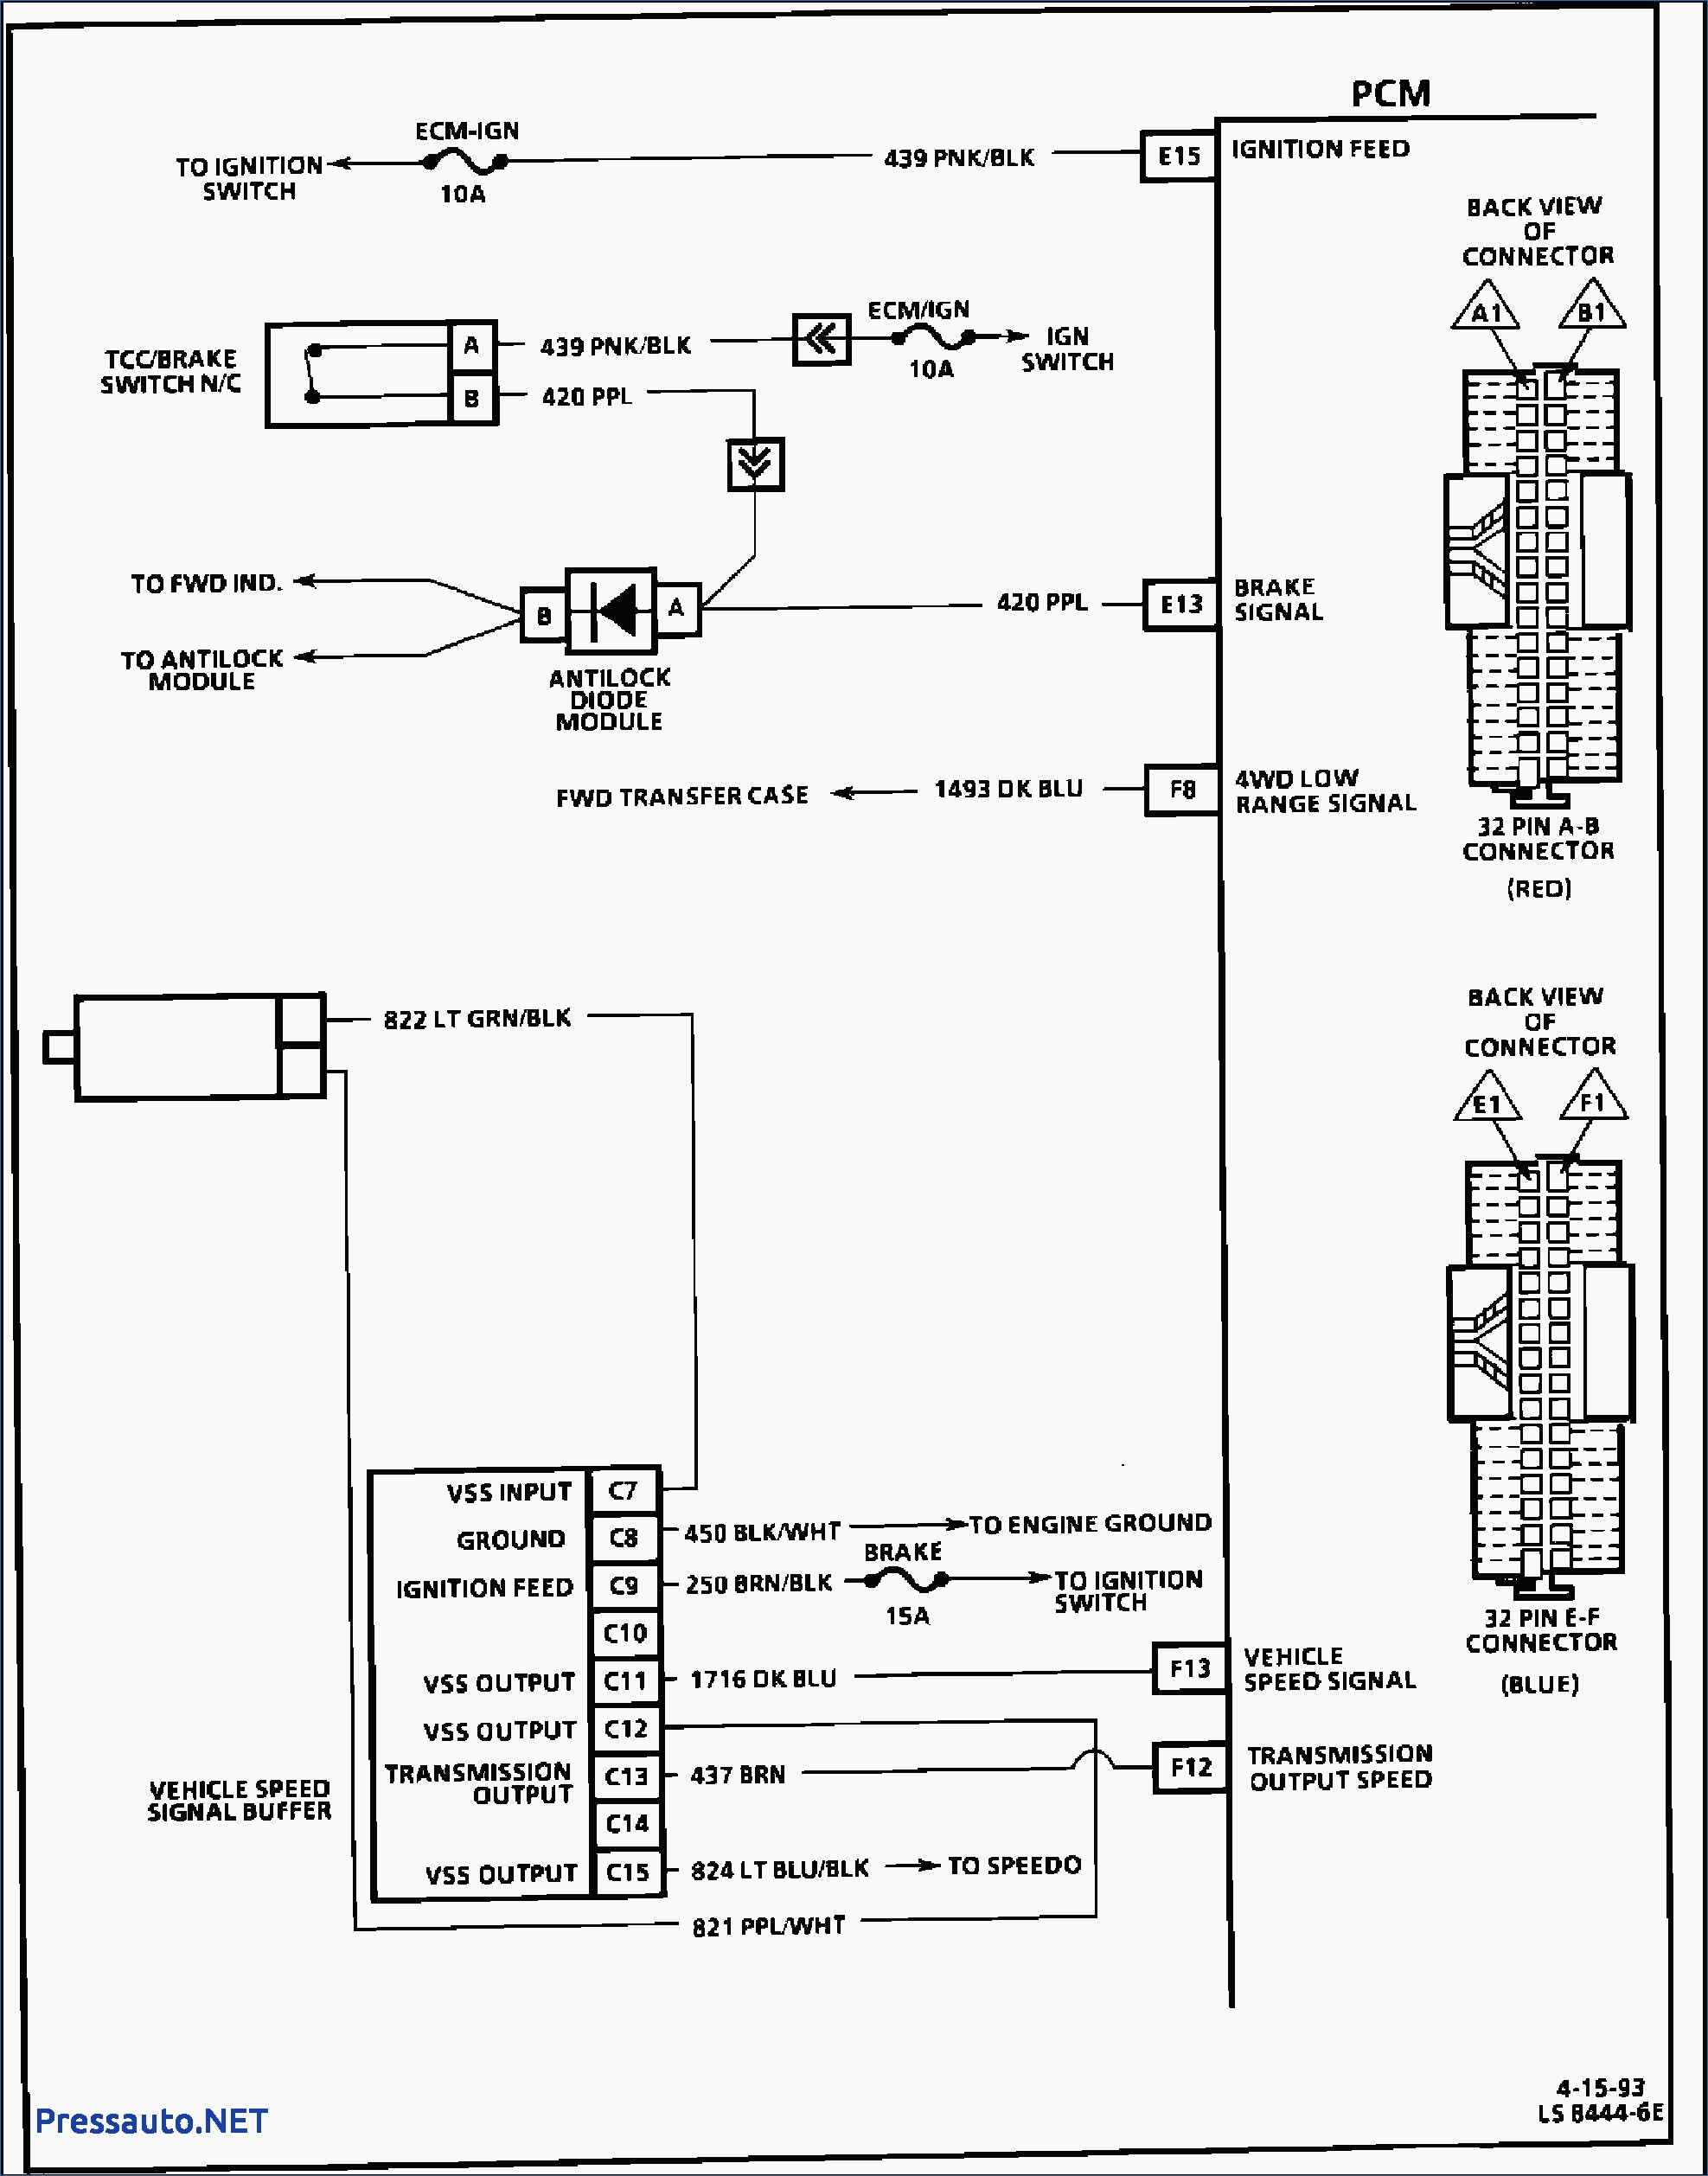 hight resolution of allison transmission wiring schematic brilliant ideas 4l60e transmission wiring diagram fresh allison at 4l60e 8e